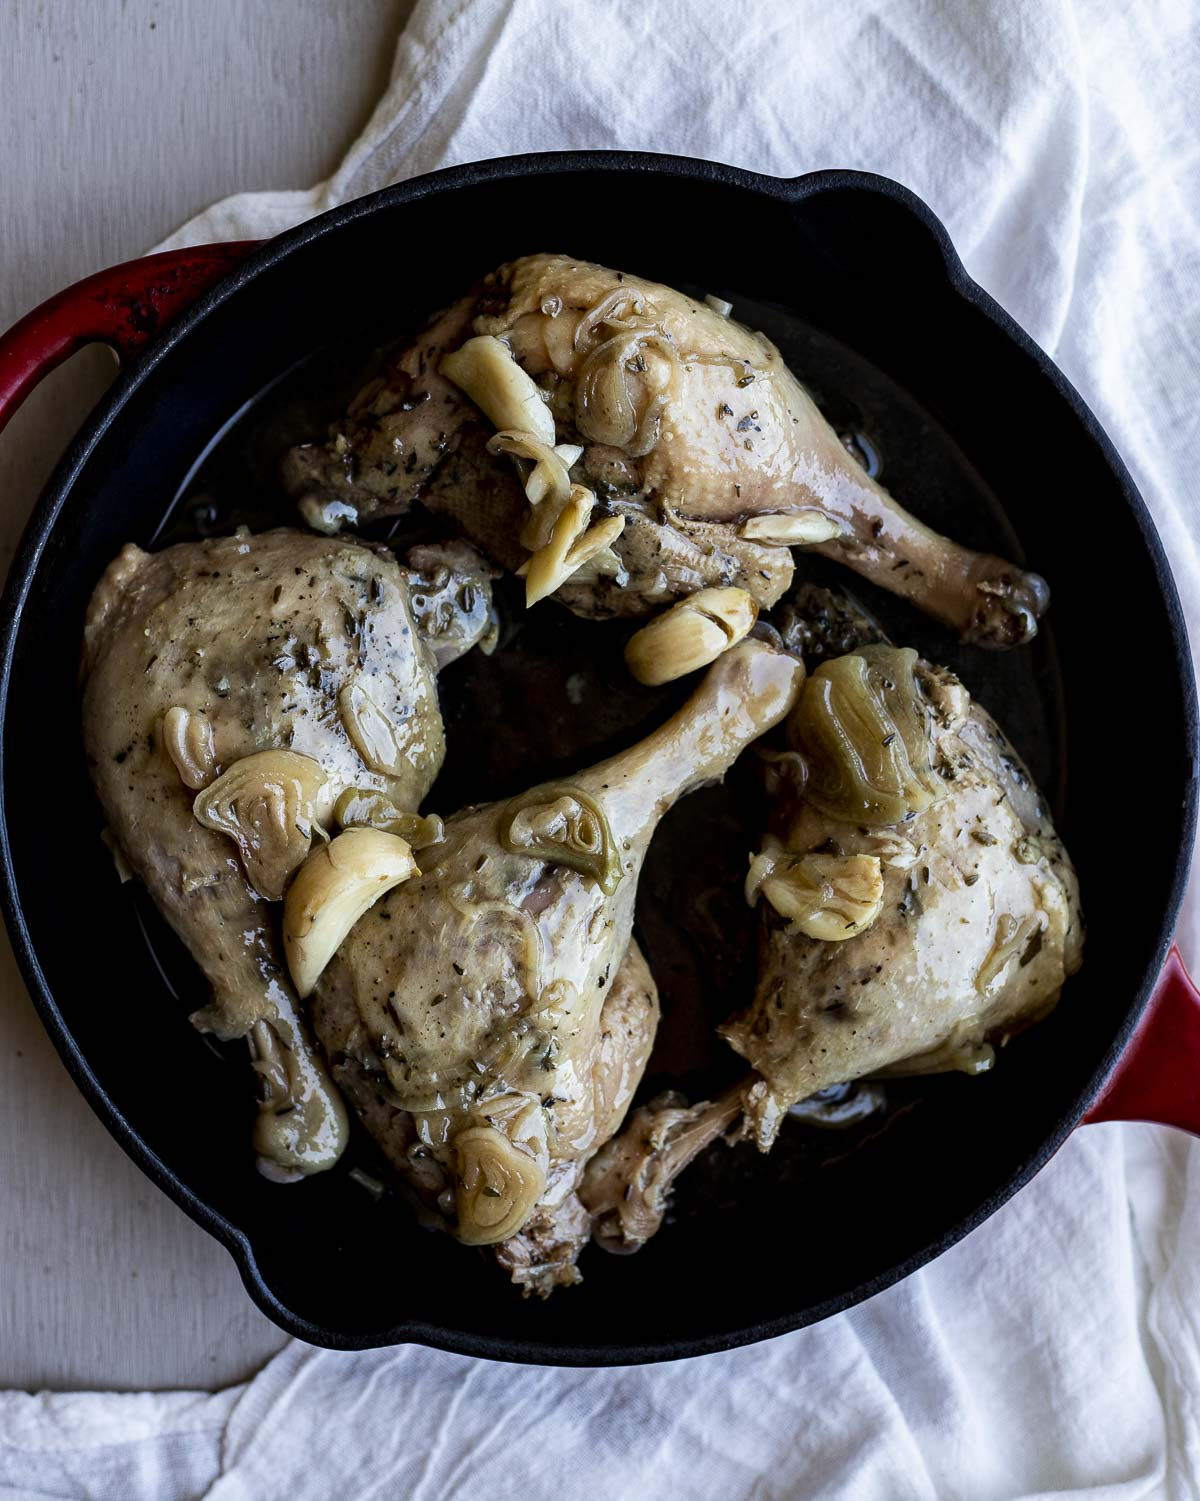 Four duck legs in a cast iron pan and ready to be broiled.